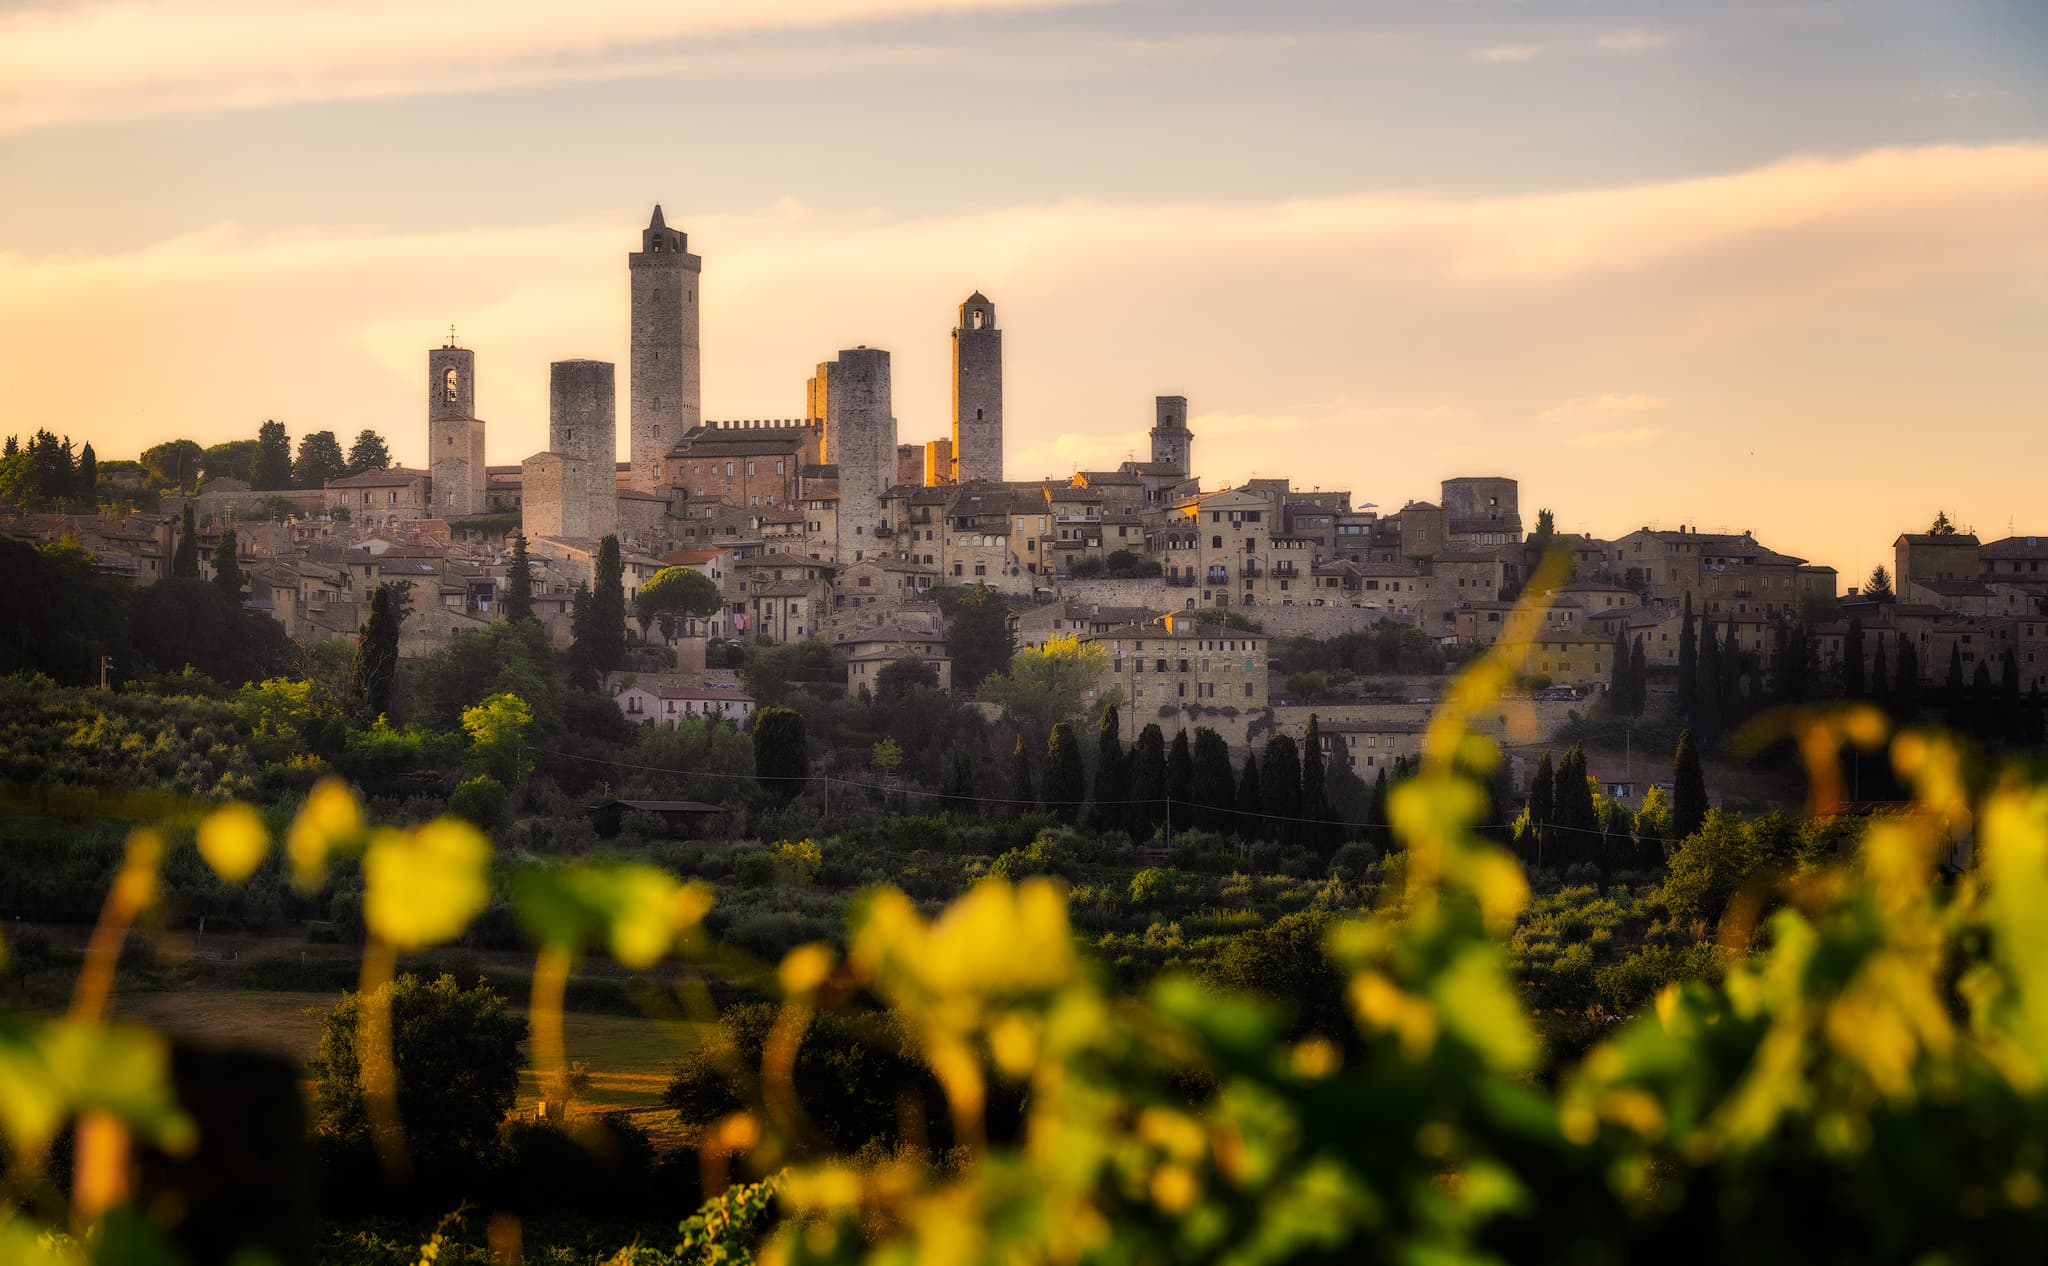 San Gimignano and the San Gimignano vineyards, Italy.